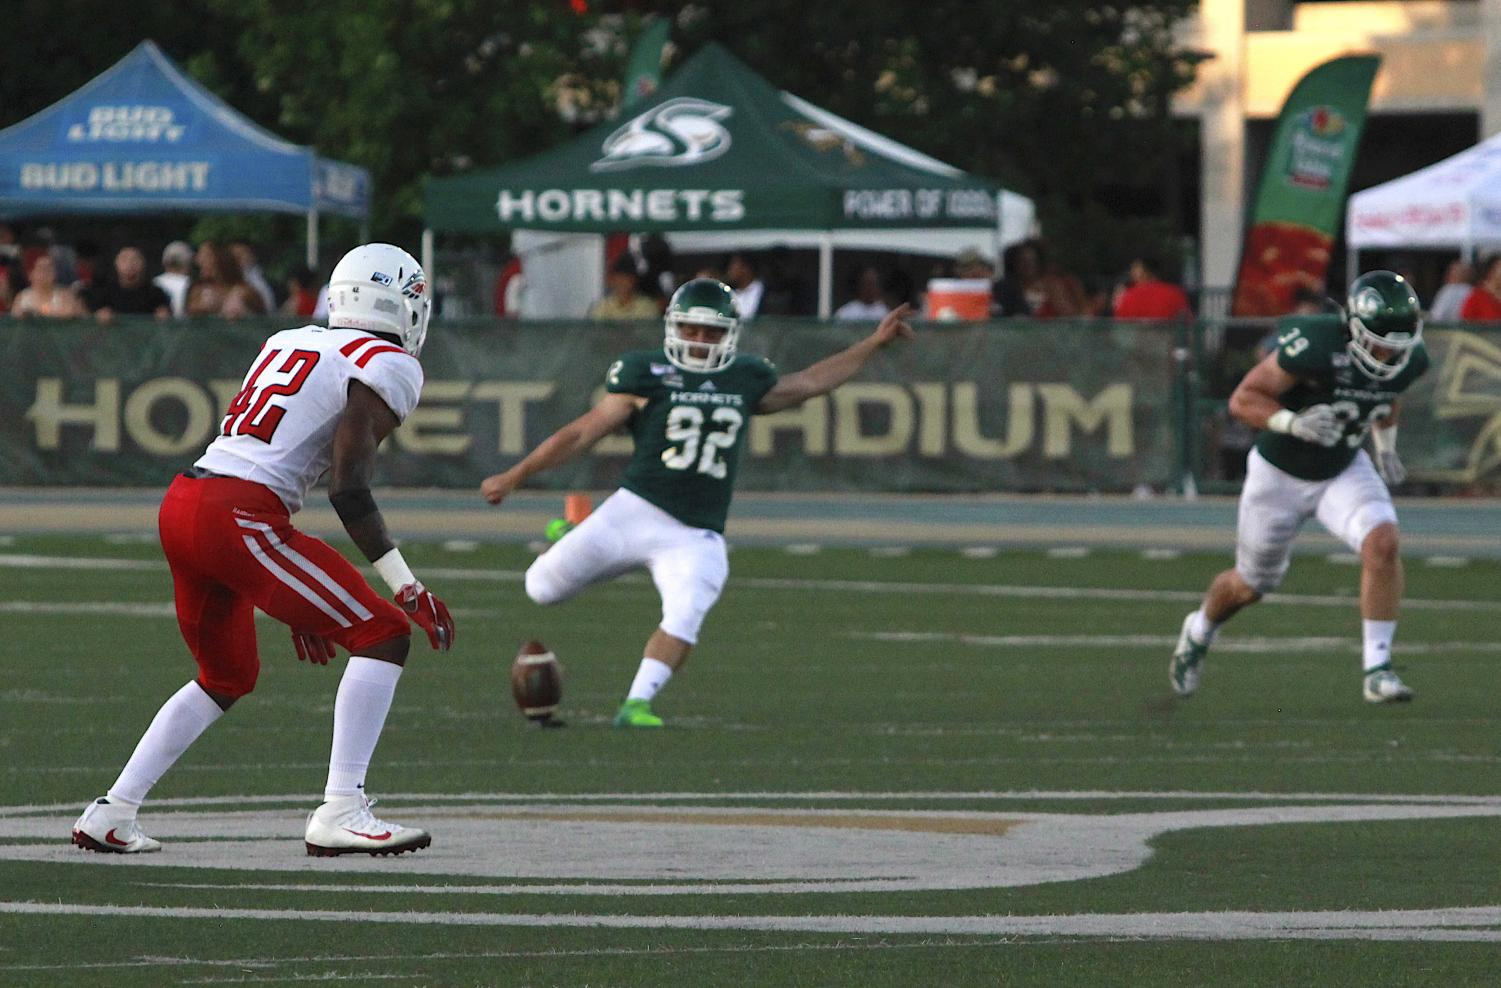 Sac+State+senior+kicker+Devon+Medeiros+prepares+to+kick+the+ball+against+Southern+Oregon+on+Saturday%2C+August+31%2C+at+Hornet+Stadium.+Medeiros+converted+all+nine+of+his+extra-point+attempts.